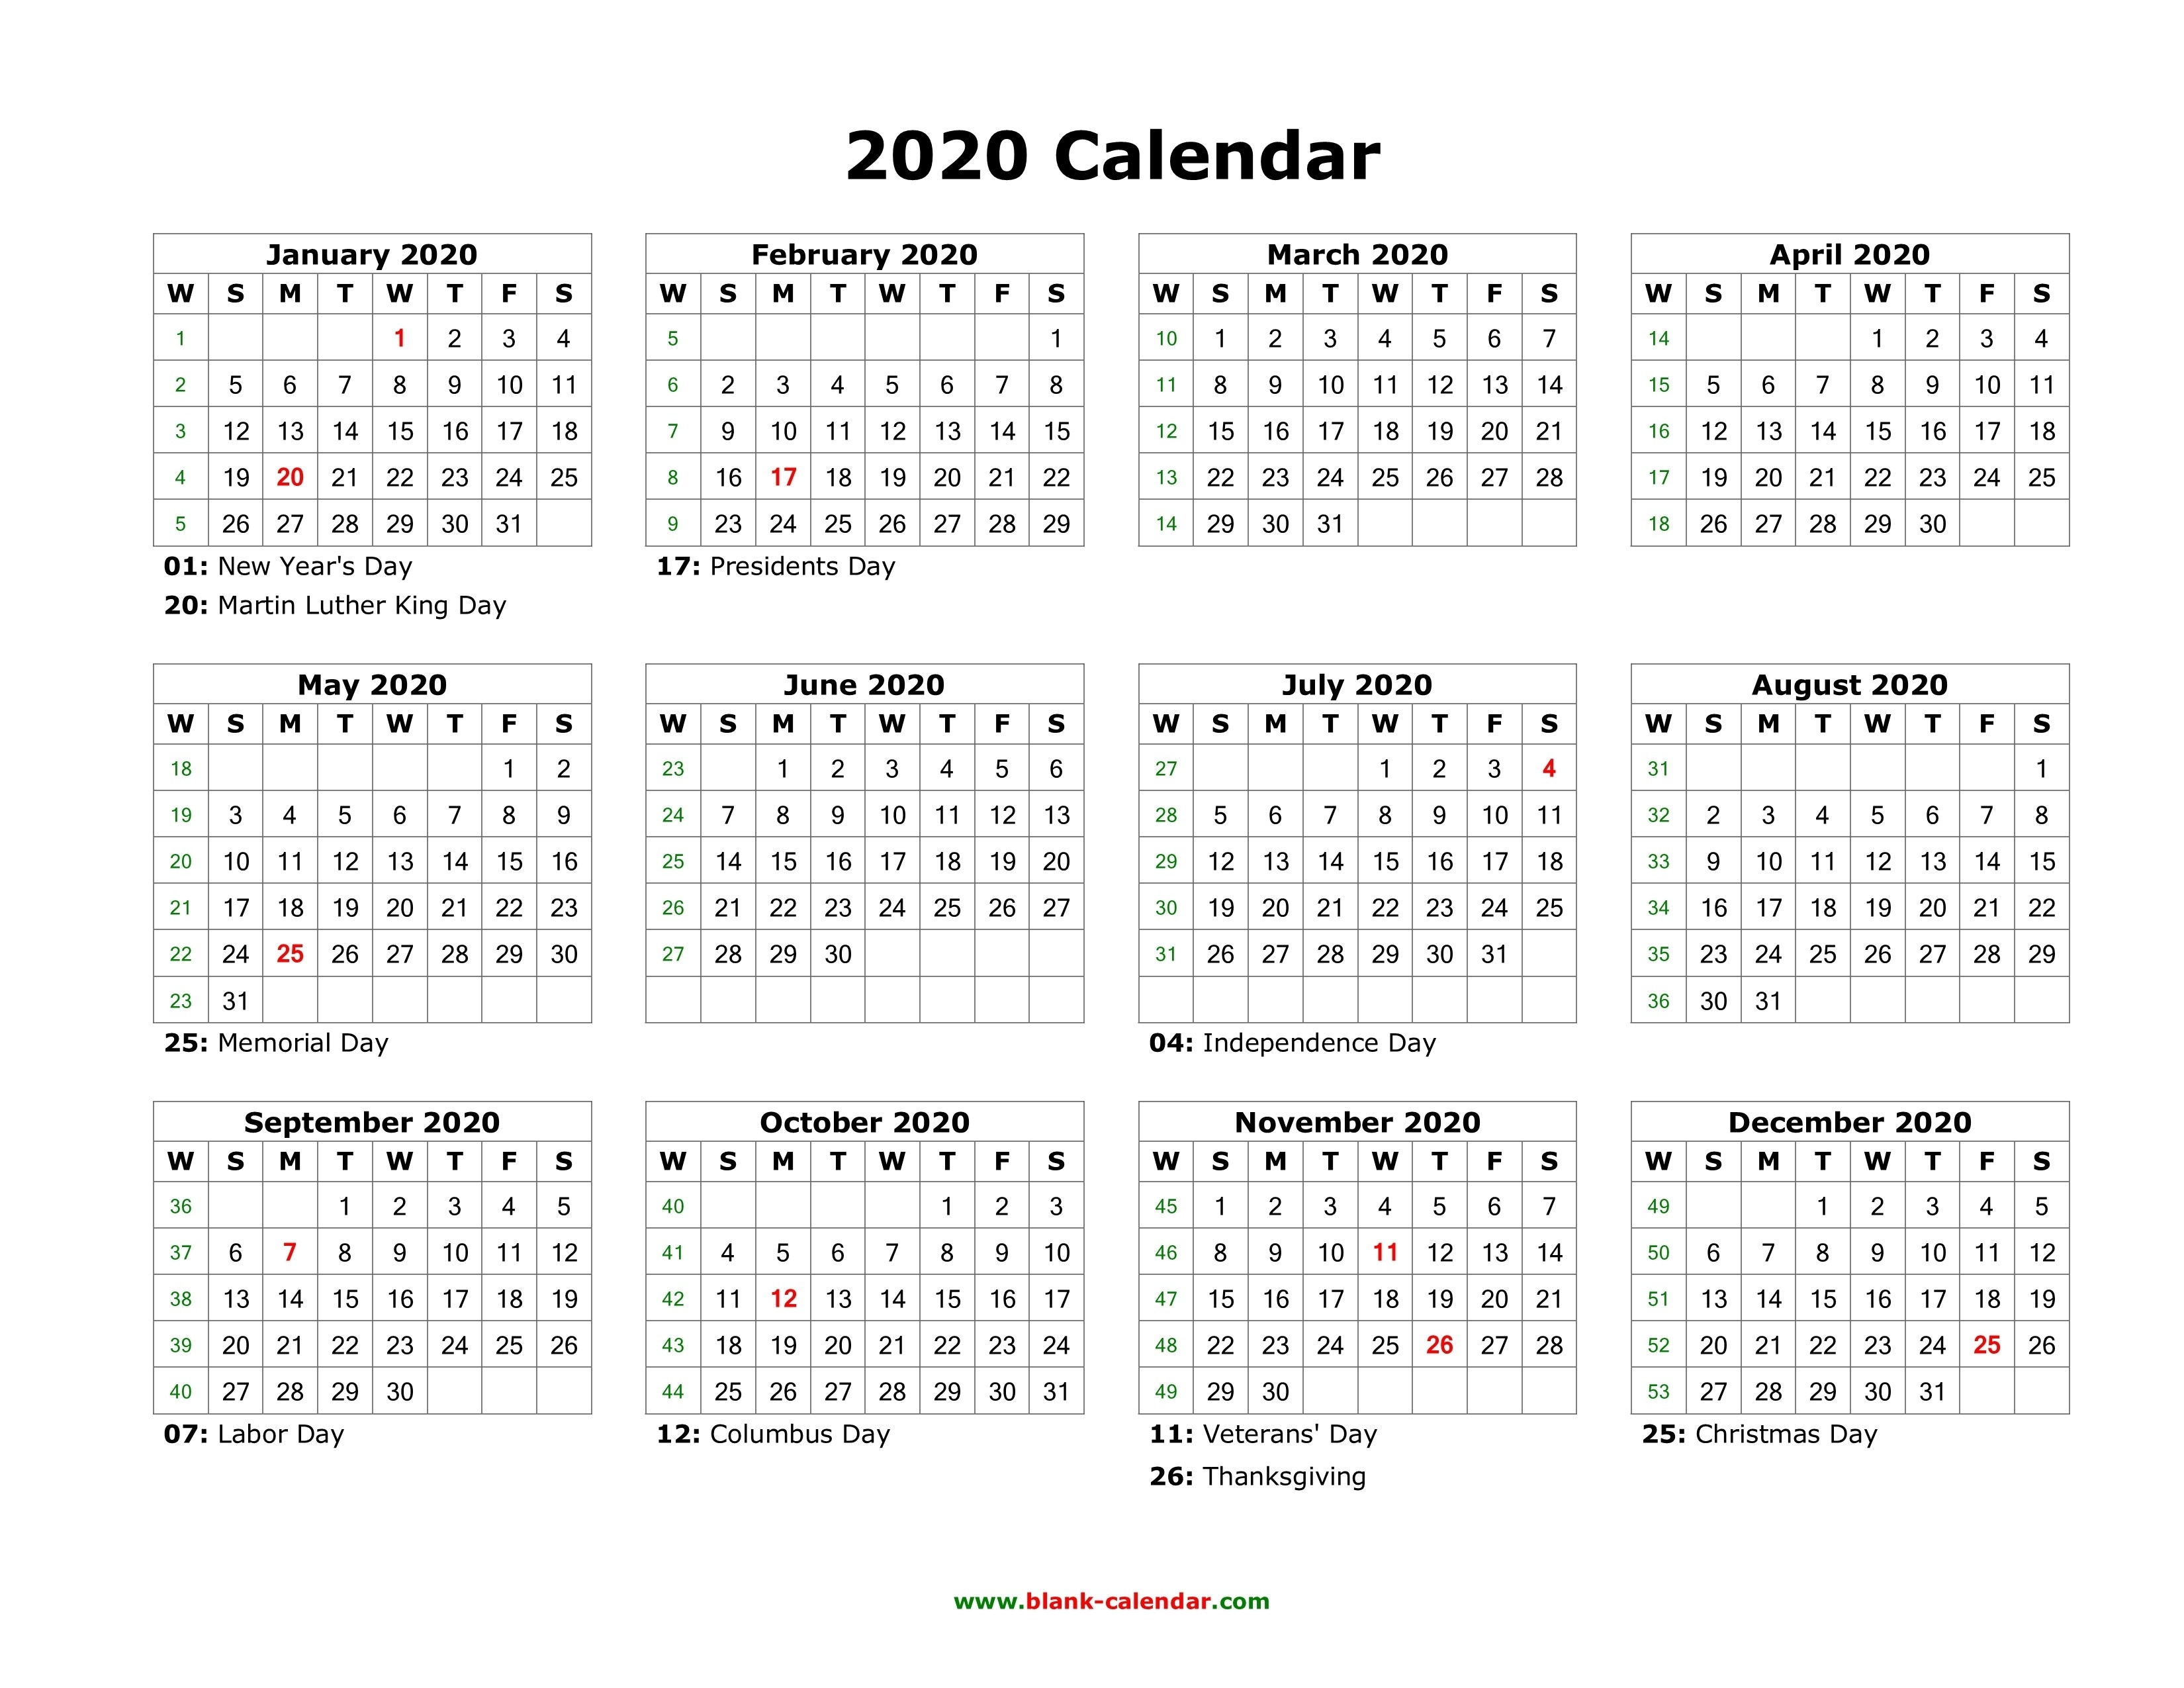 Download Blank Calendar 2020 With Us Holidays 12 Months On-2020 Calendar Template With Catholic Holidays